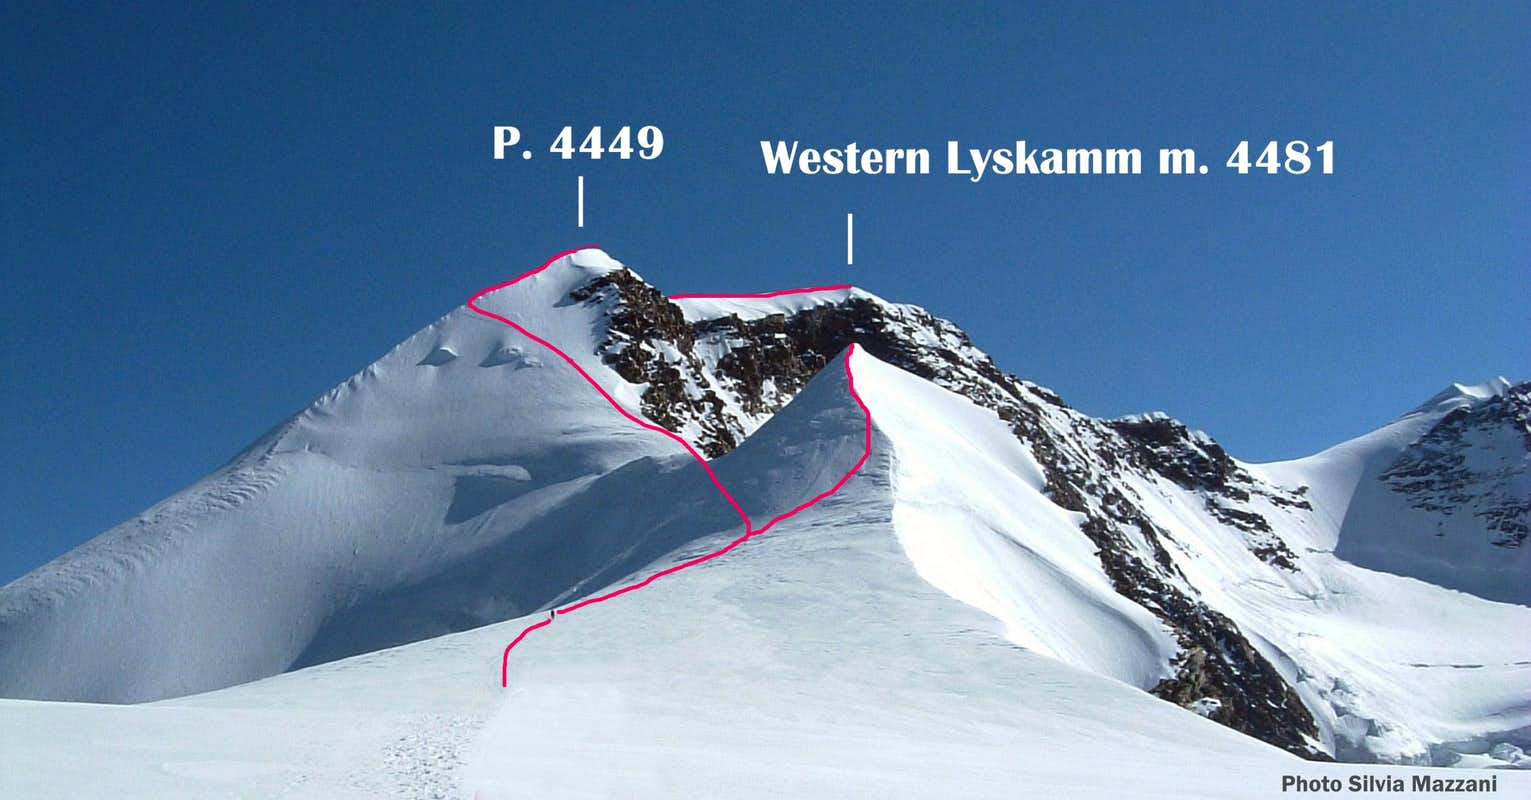 Western Lyskamm Normal Route topo